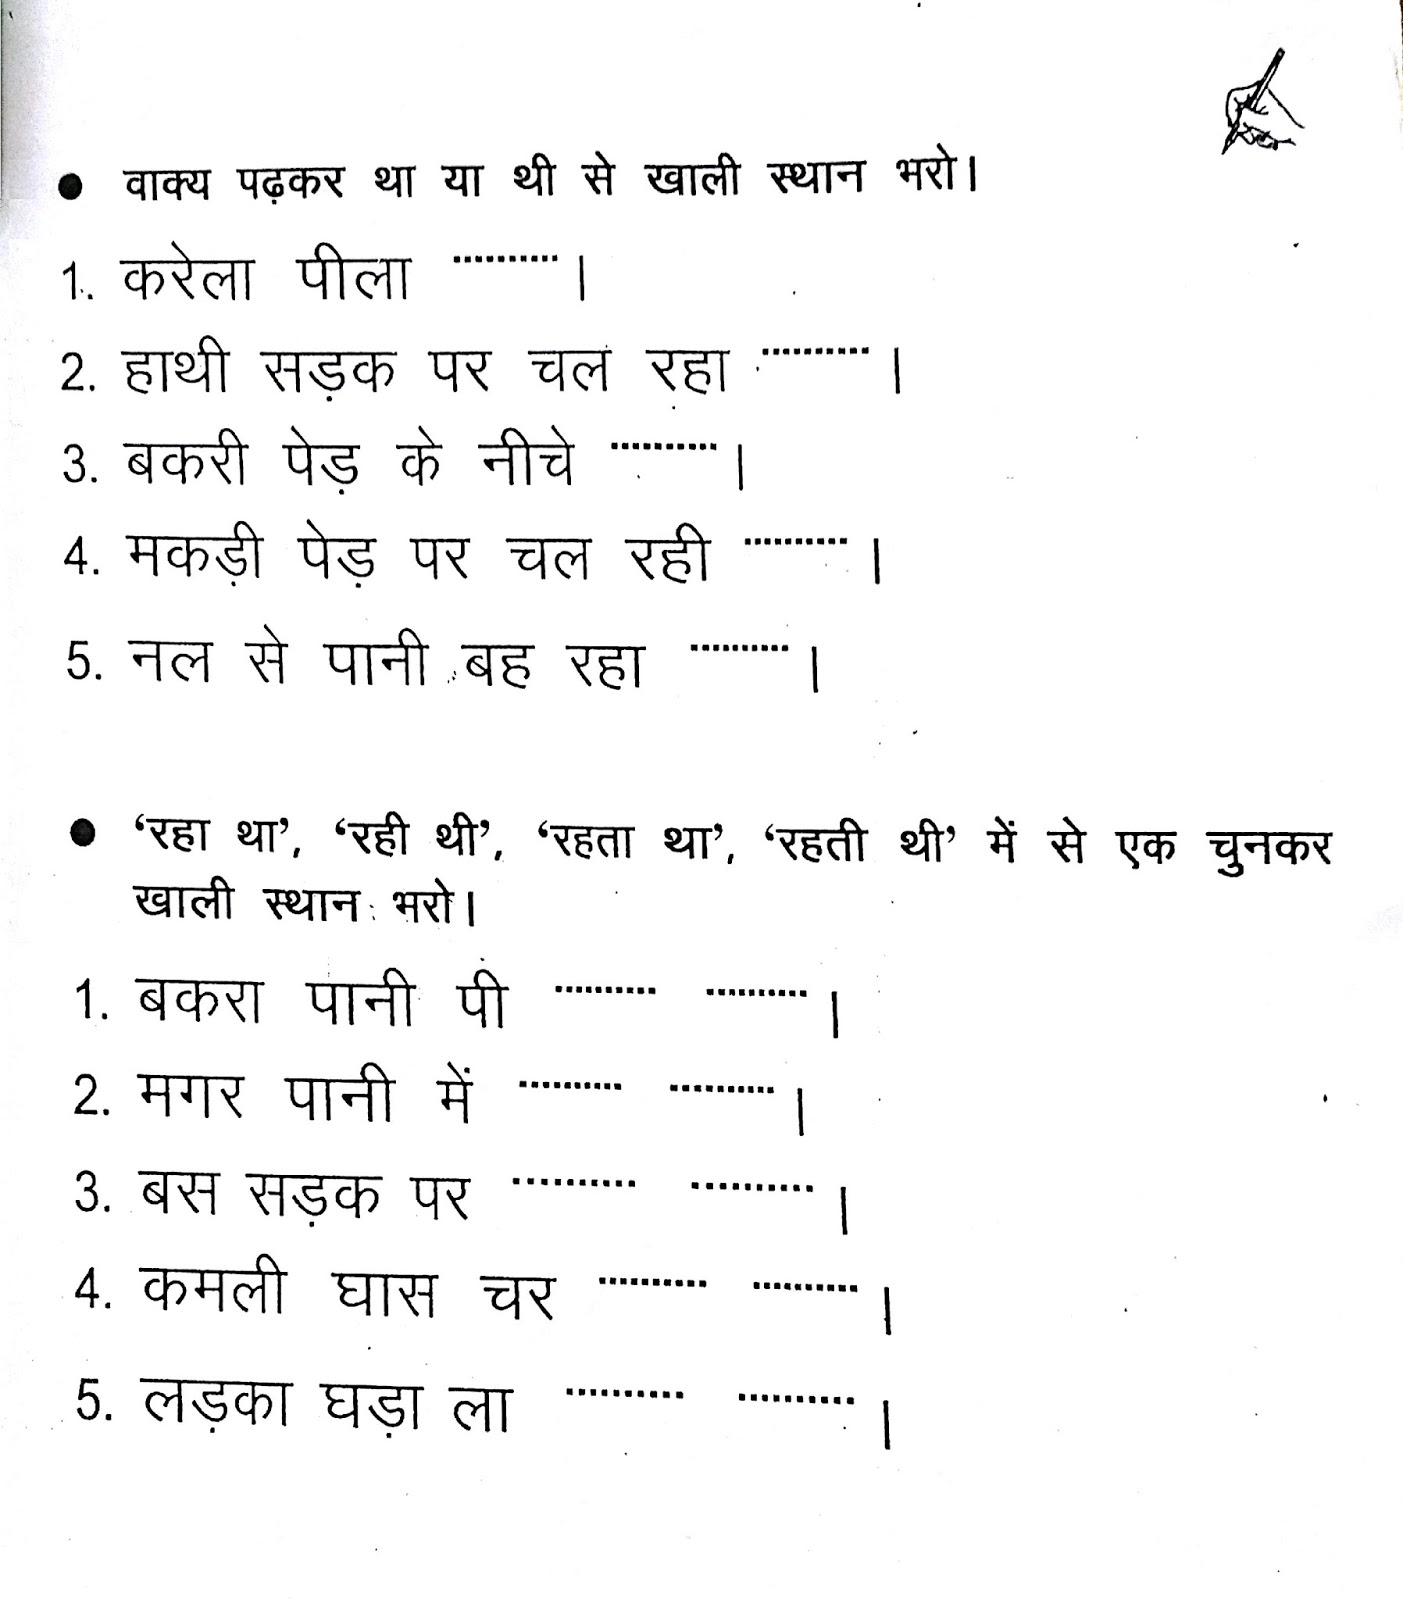 medium resolution of 42+ Free Hindi Grammar Worksheets For Class 5 Pdf Images – Tunnel To  Viaduct Run